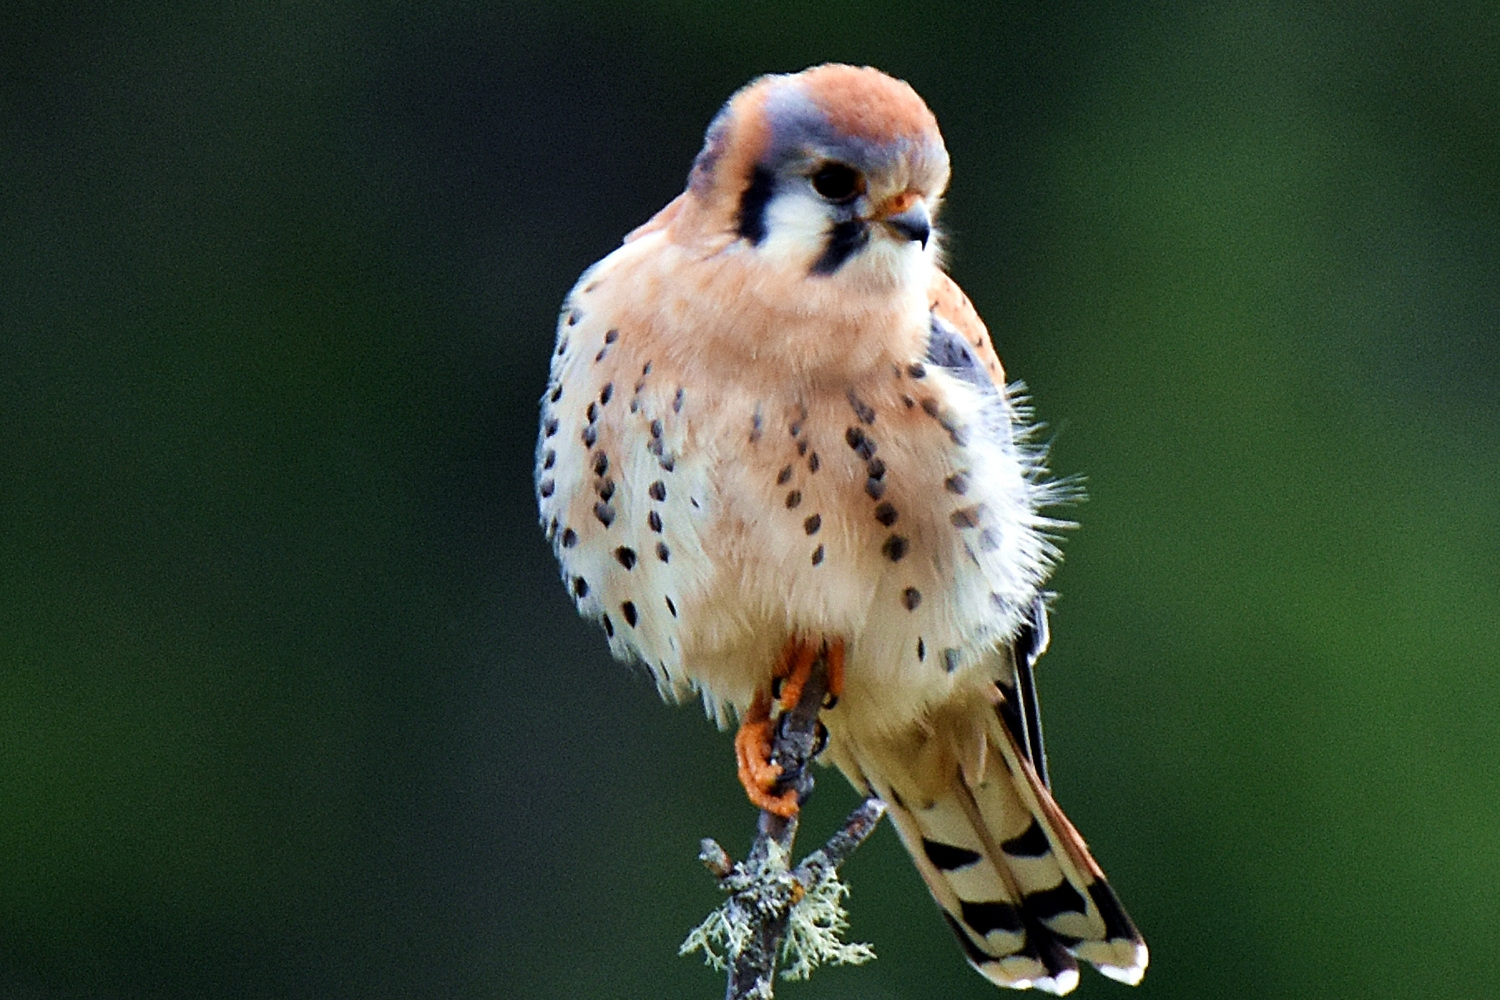 AN AMERICAN KESTREL perches on a branch in Piercy. (Talia Rose)